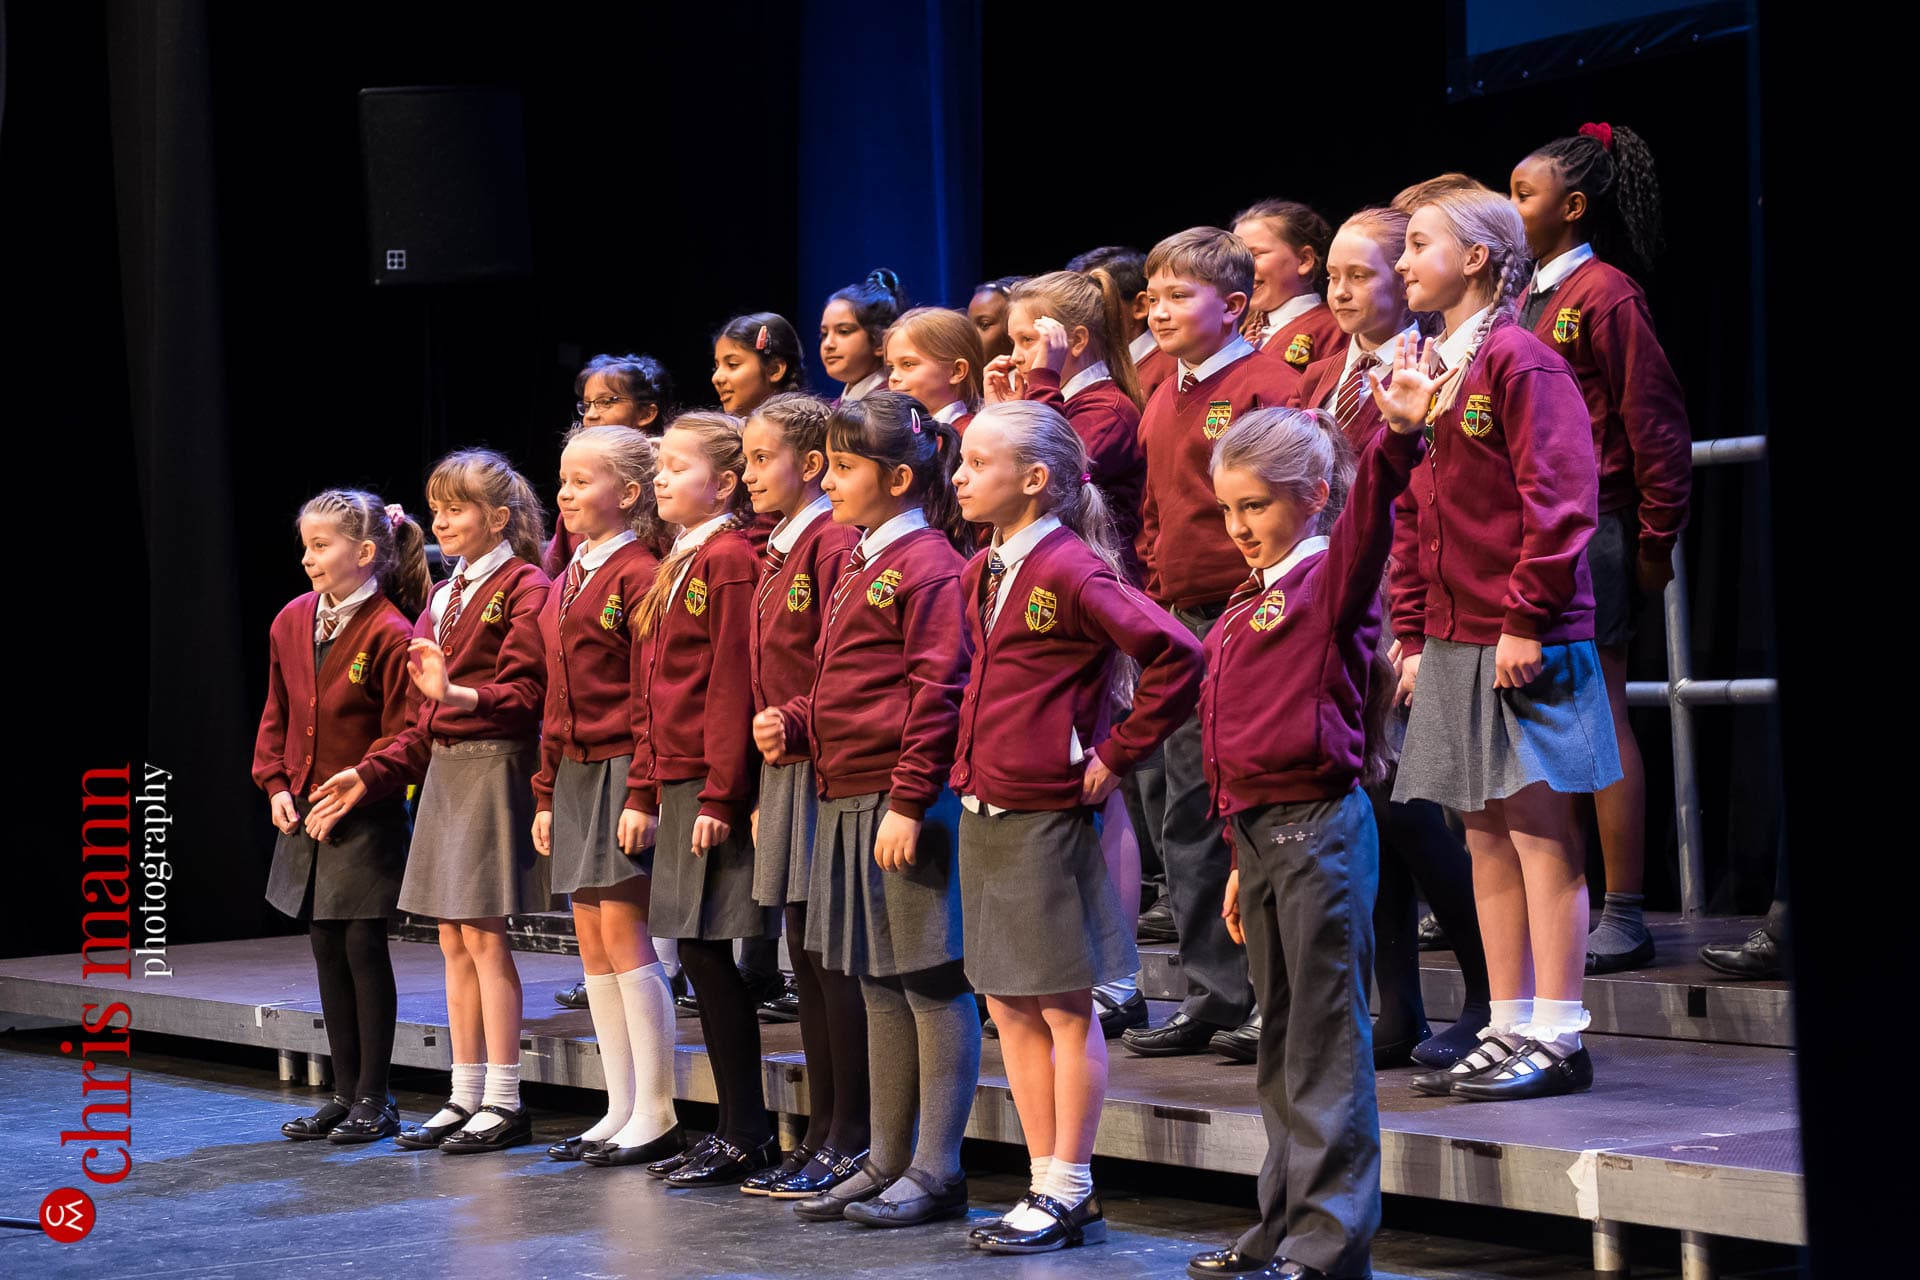 Pound Hill Junior School pupils perform at Choiroke 2016 concert Dorking Halls